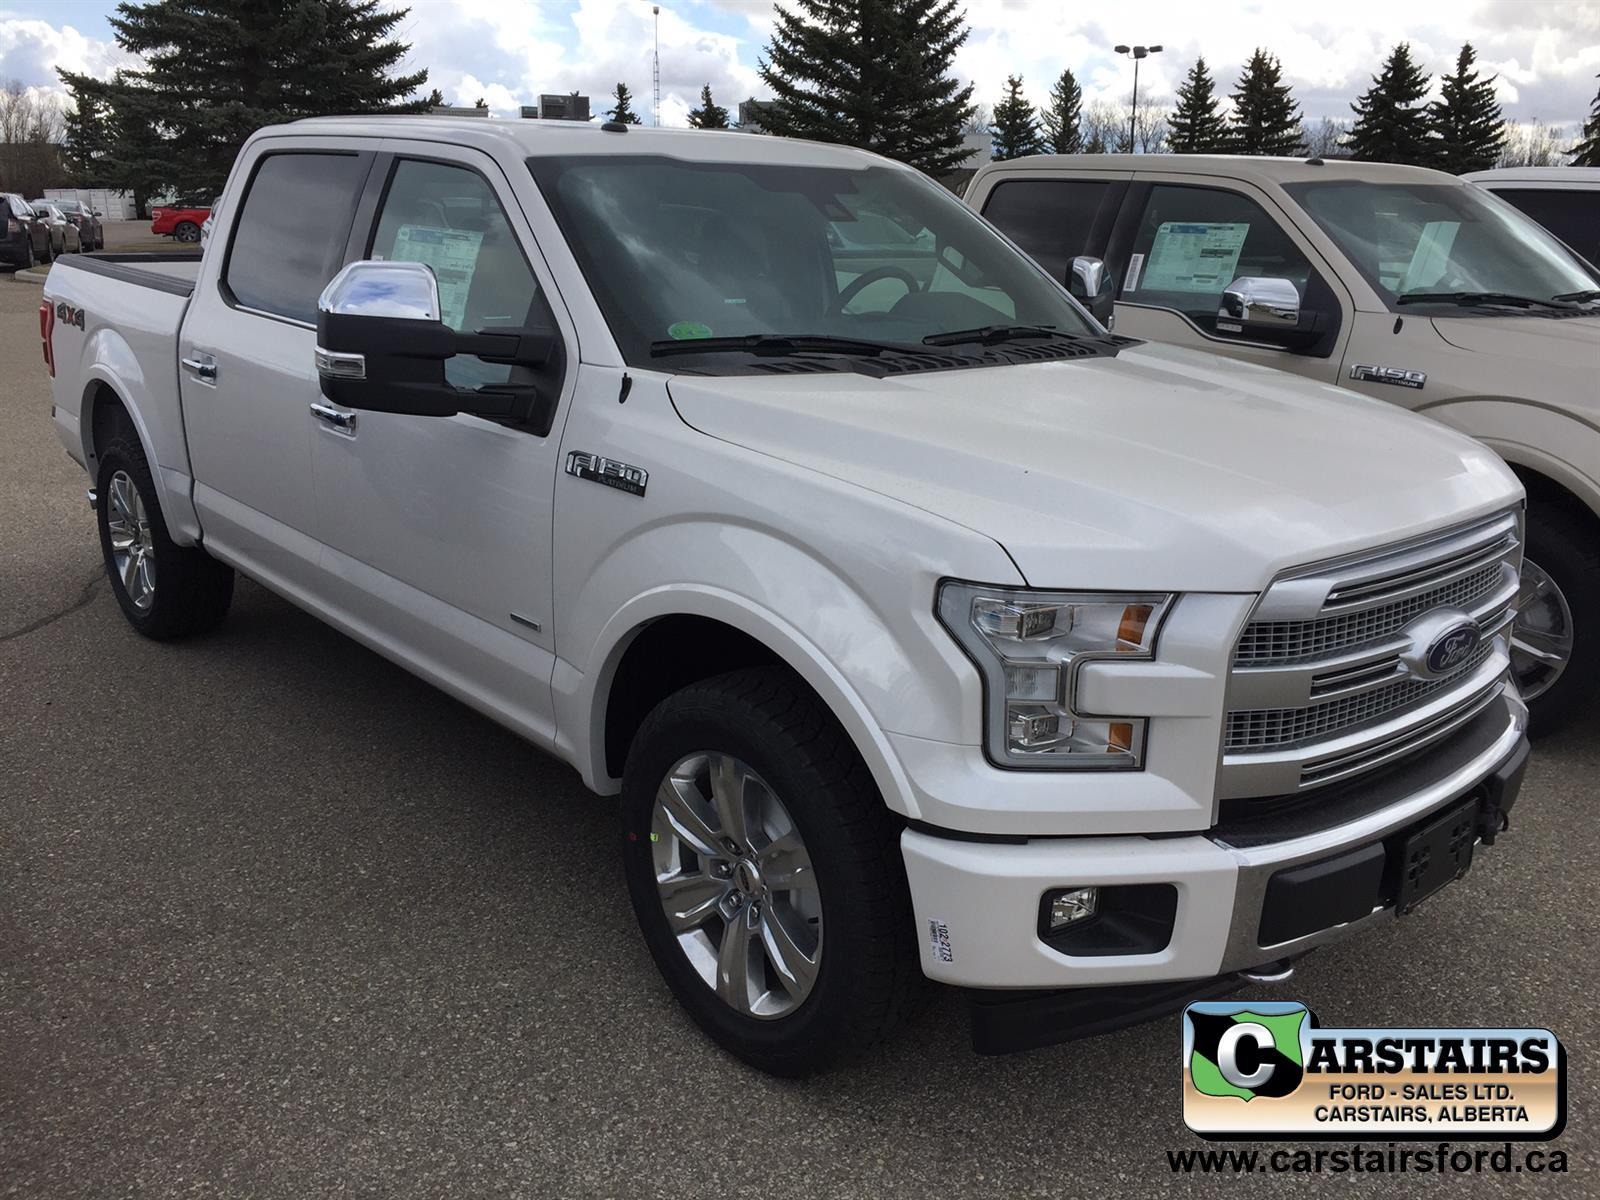 2017 Ford F-150 Platinum 145""